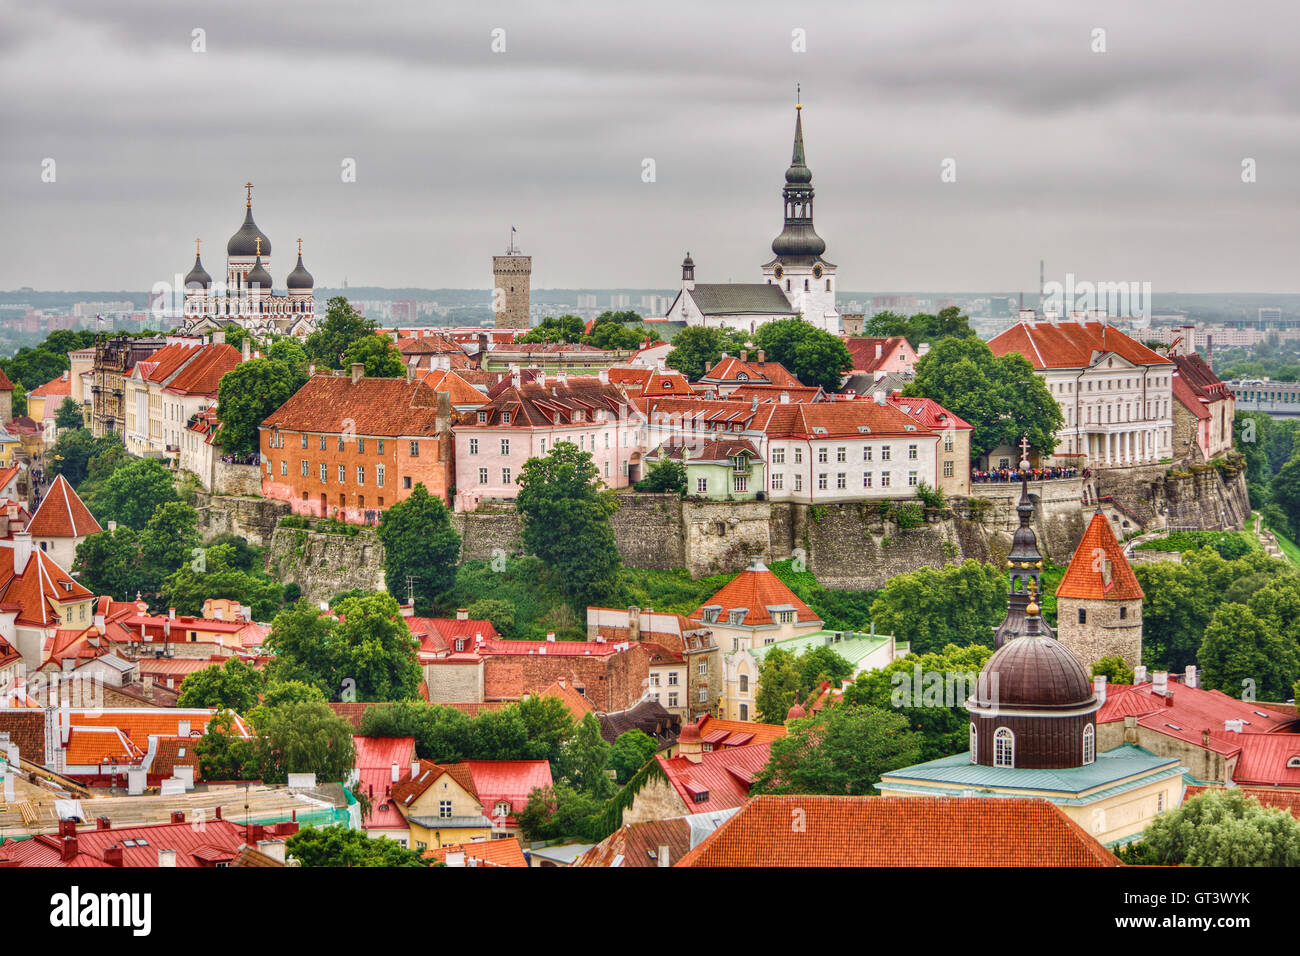 July 2016, old town of Tallinn (Estonia), HDR-technique - Stock Image